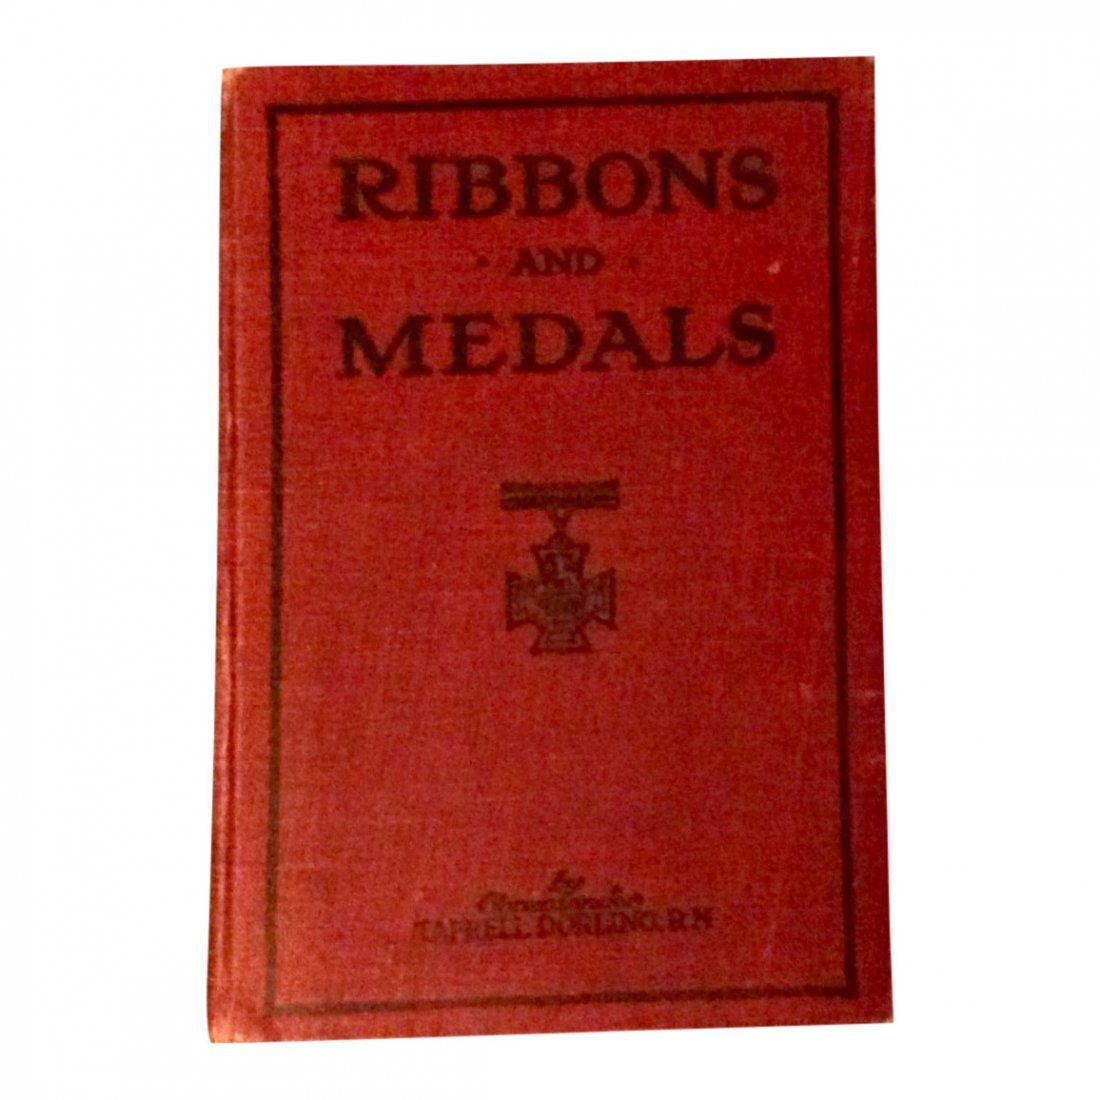 Military Reference Ribbons & Medals, 1918